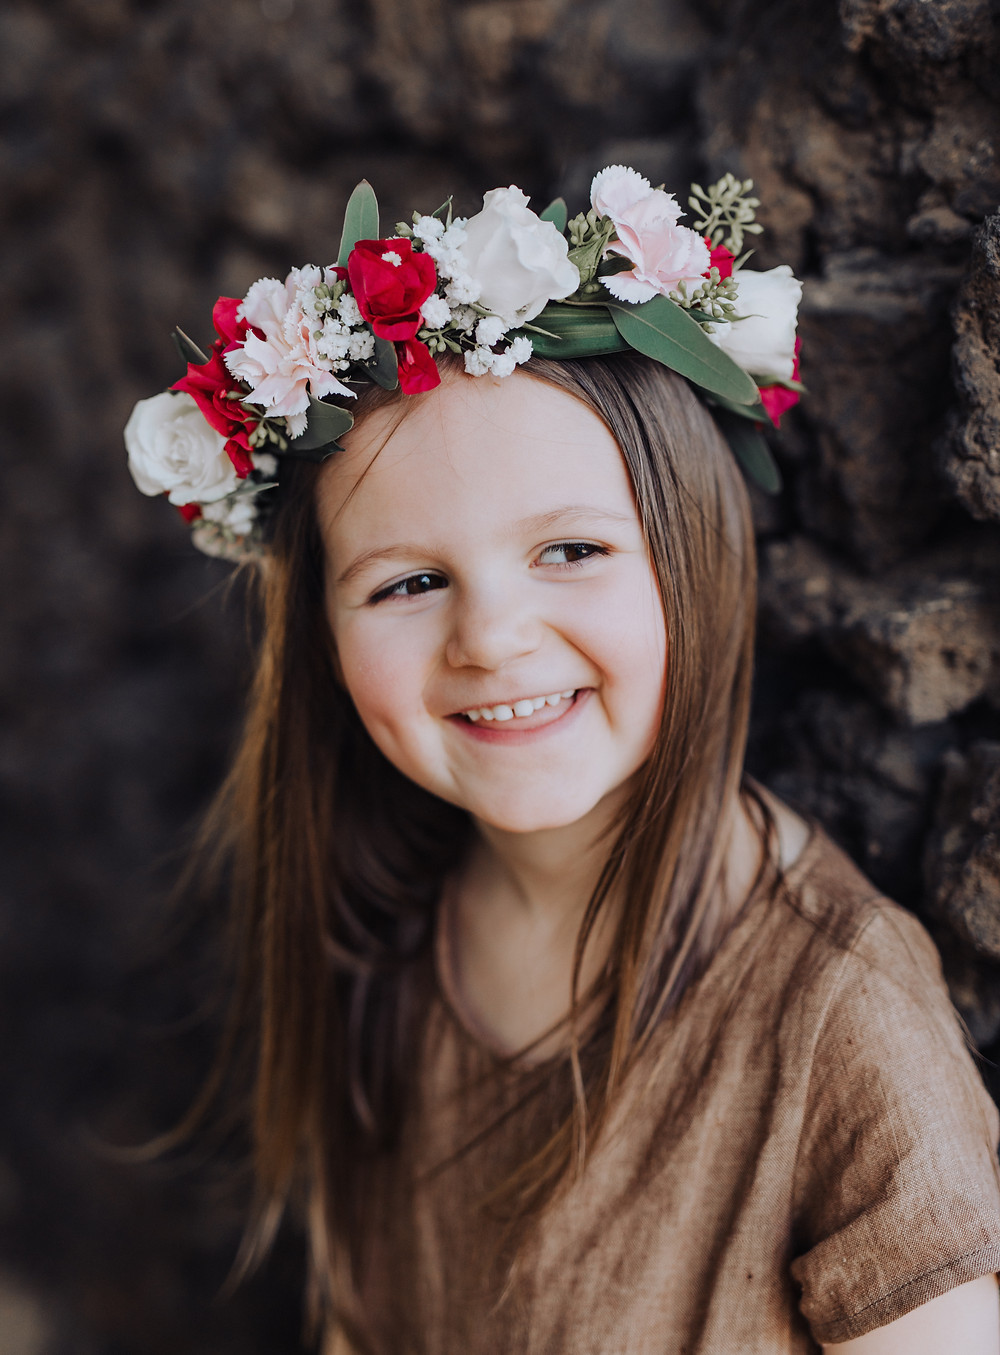 A little girl is smiling wearing a flower crown in her hair.